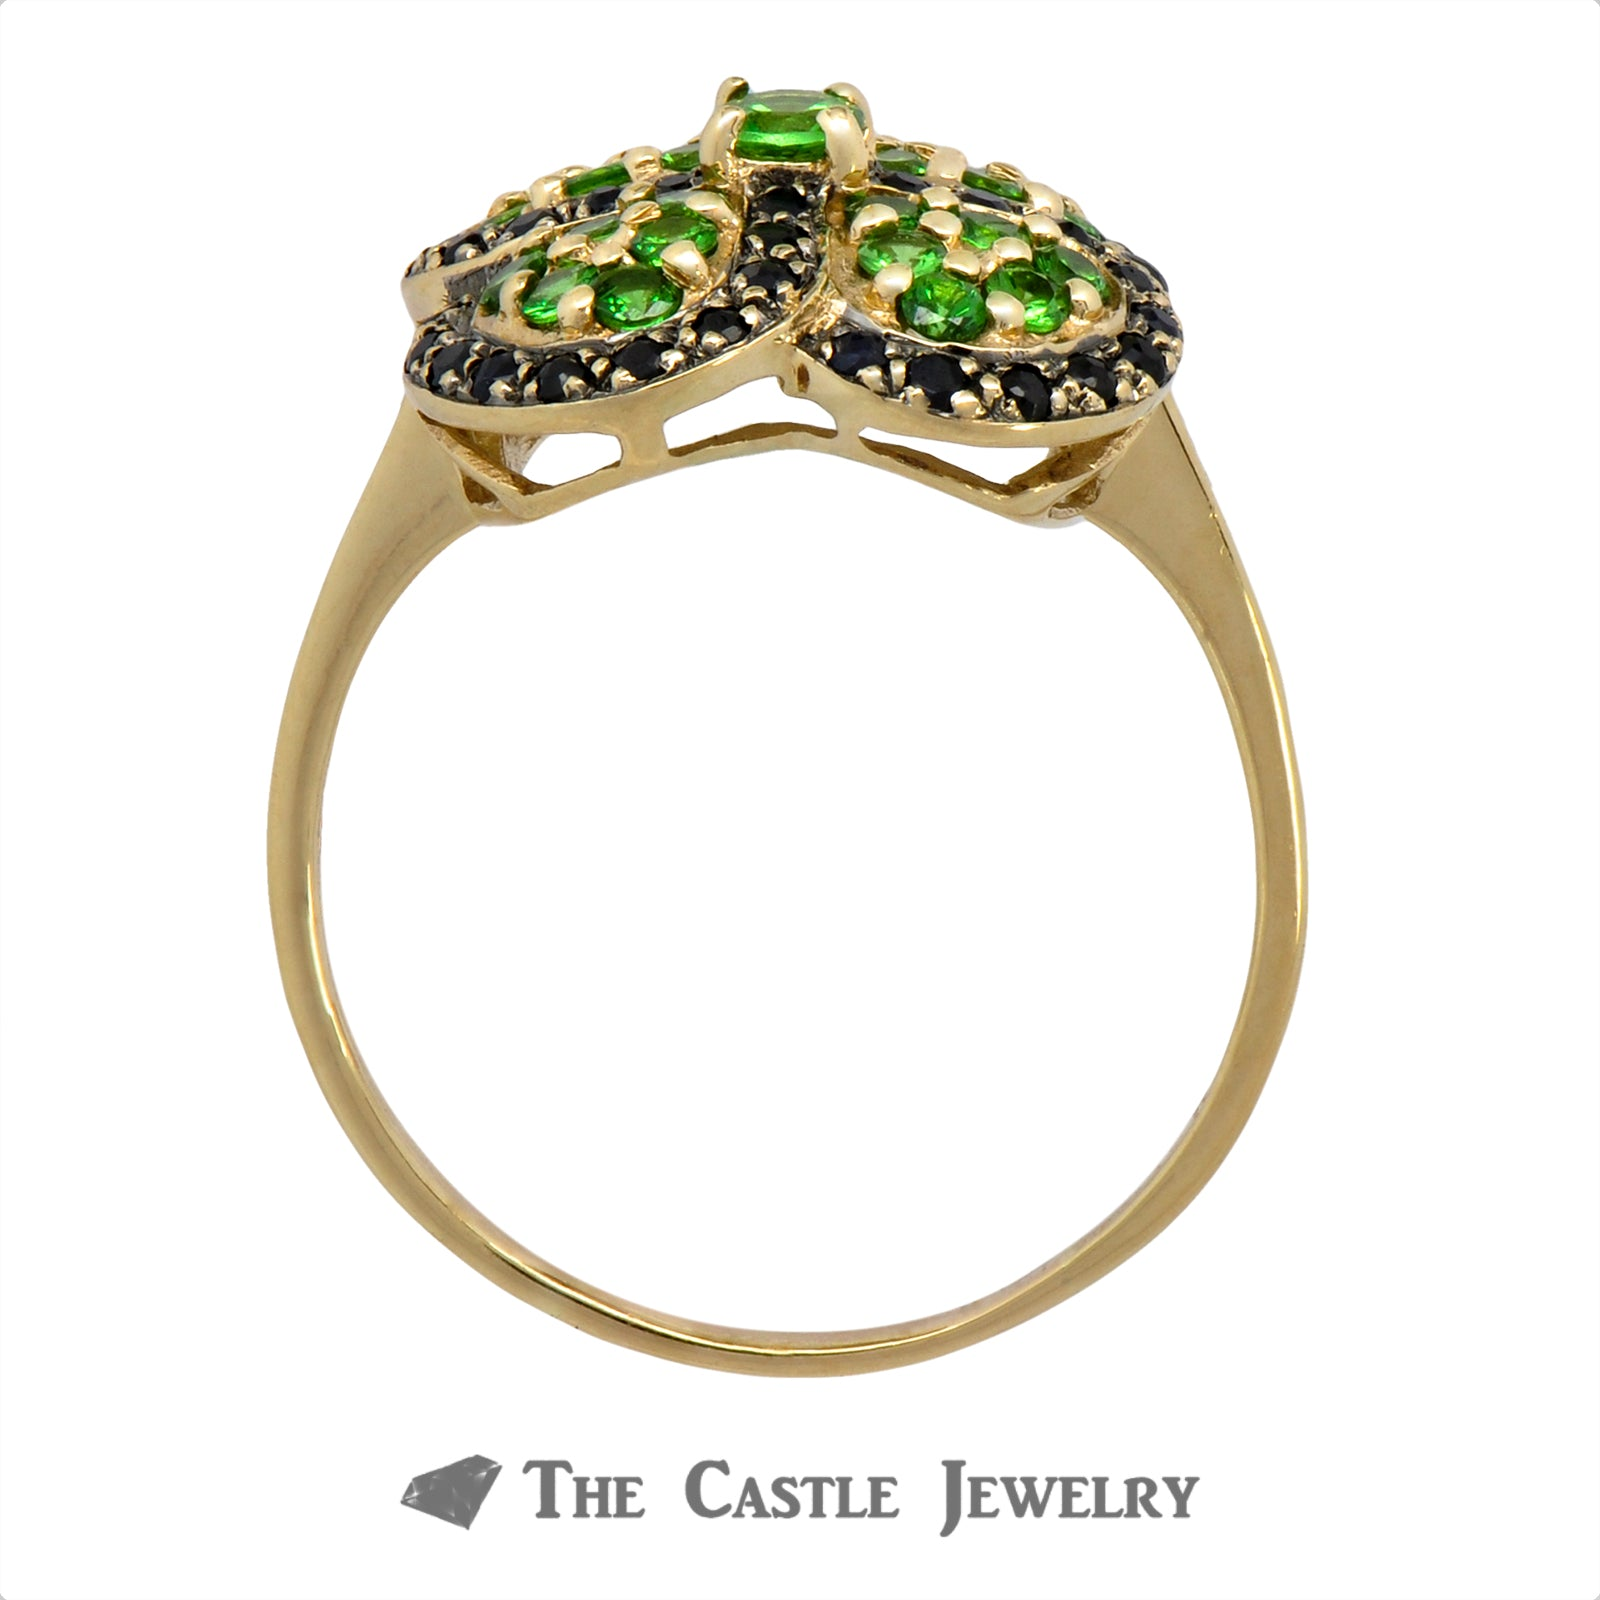 Sapphire and Tsavorite Garnet Clover Cluster Ring in 10k Yellow Gold-1